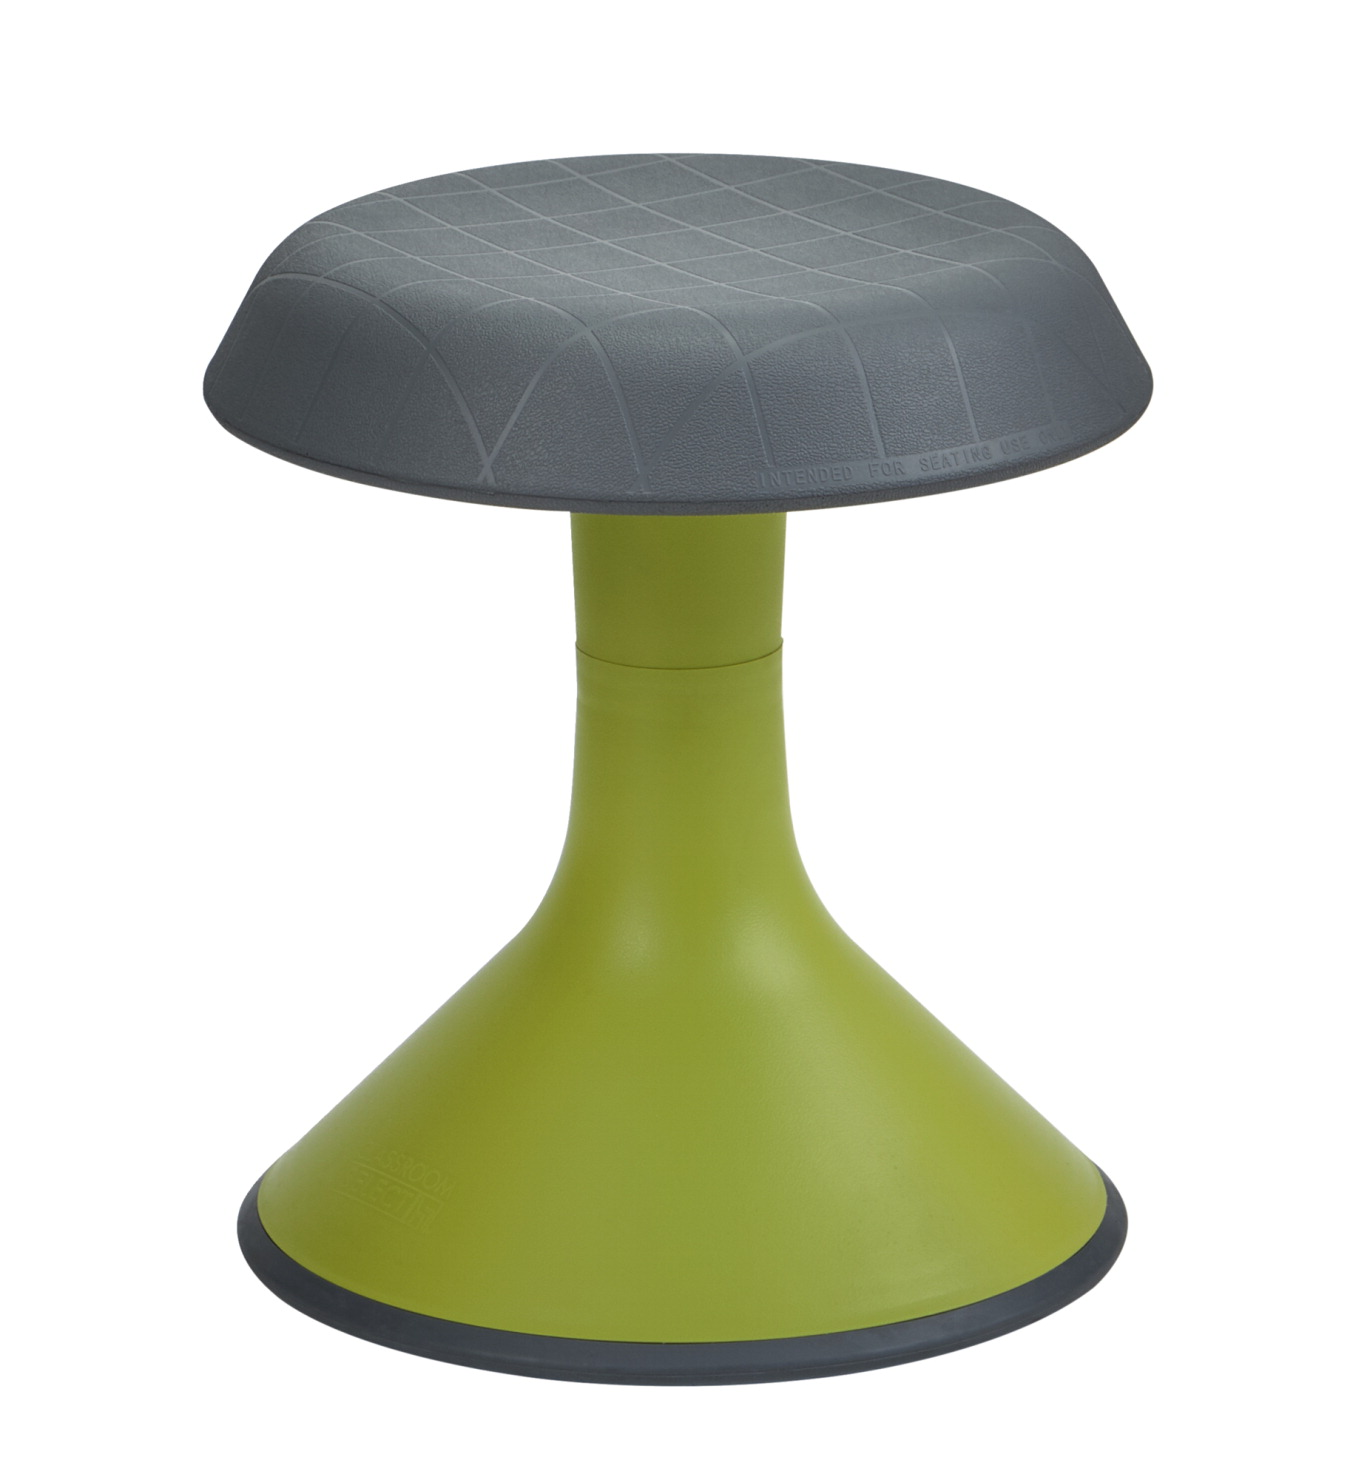 Classroom Select NeoRok Plus Stool, Active Wobble Seating, Soft Seat Plus, 16-1/2 Inch Seat Height